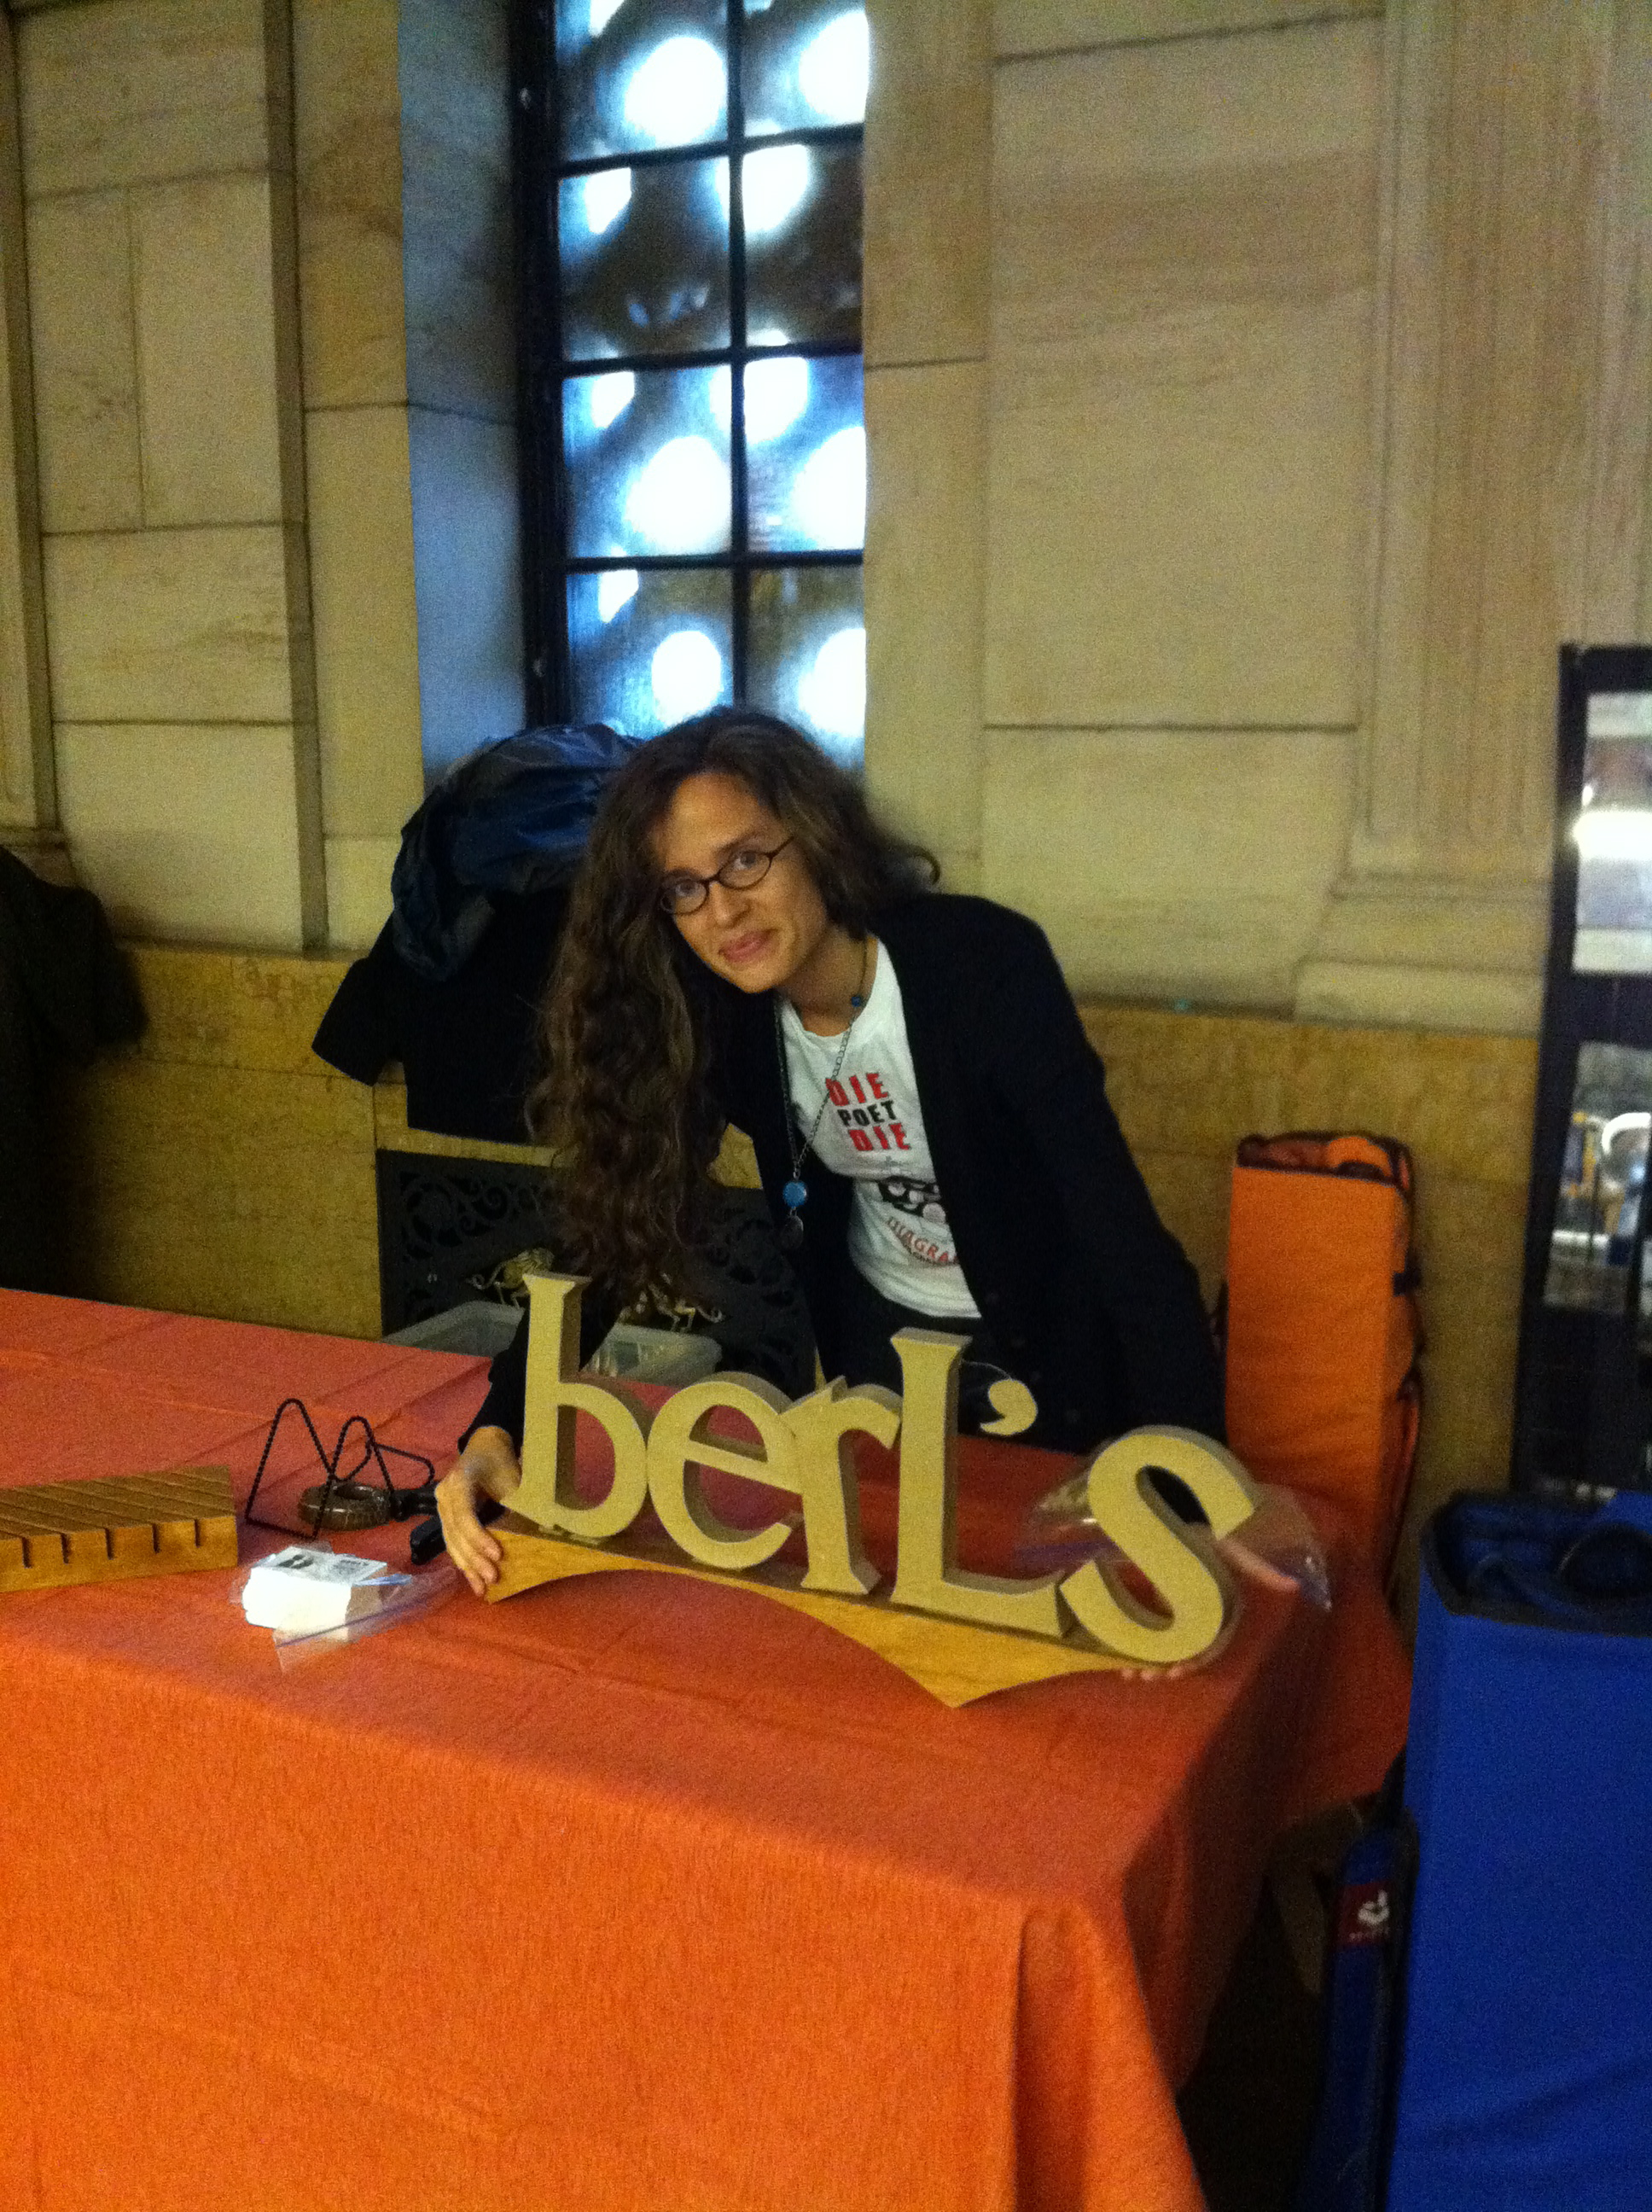 Day One! Farrah brandishes our first Berl's sign, designed by Jared's father.